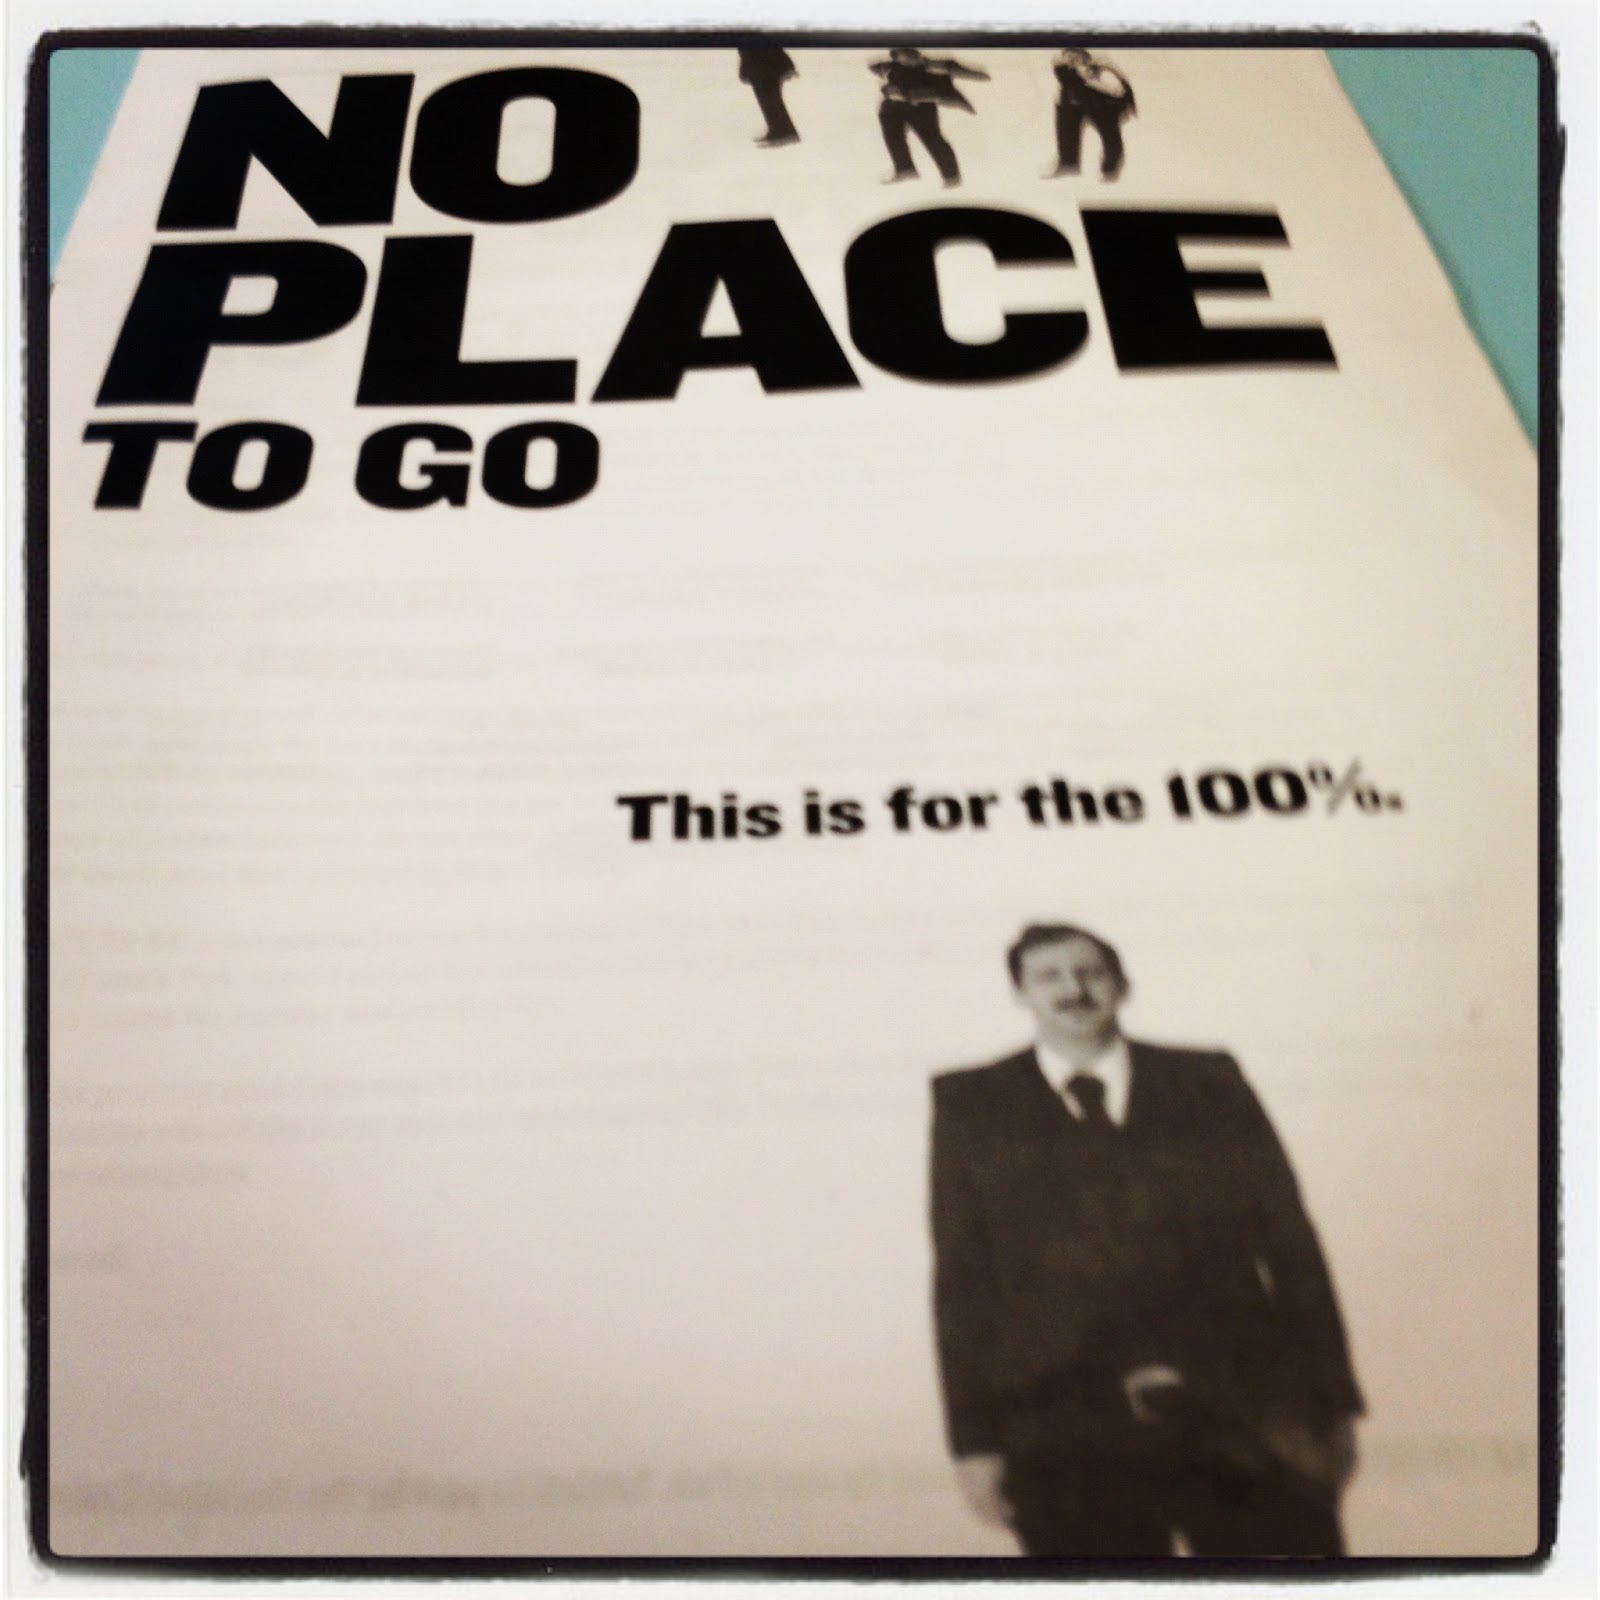 ... Ethan Lipton's No Place to Go is a serio-comedic